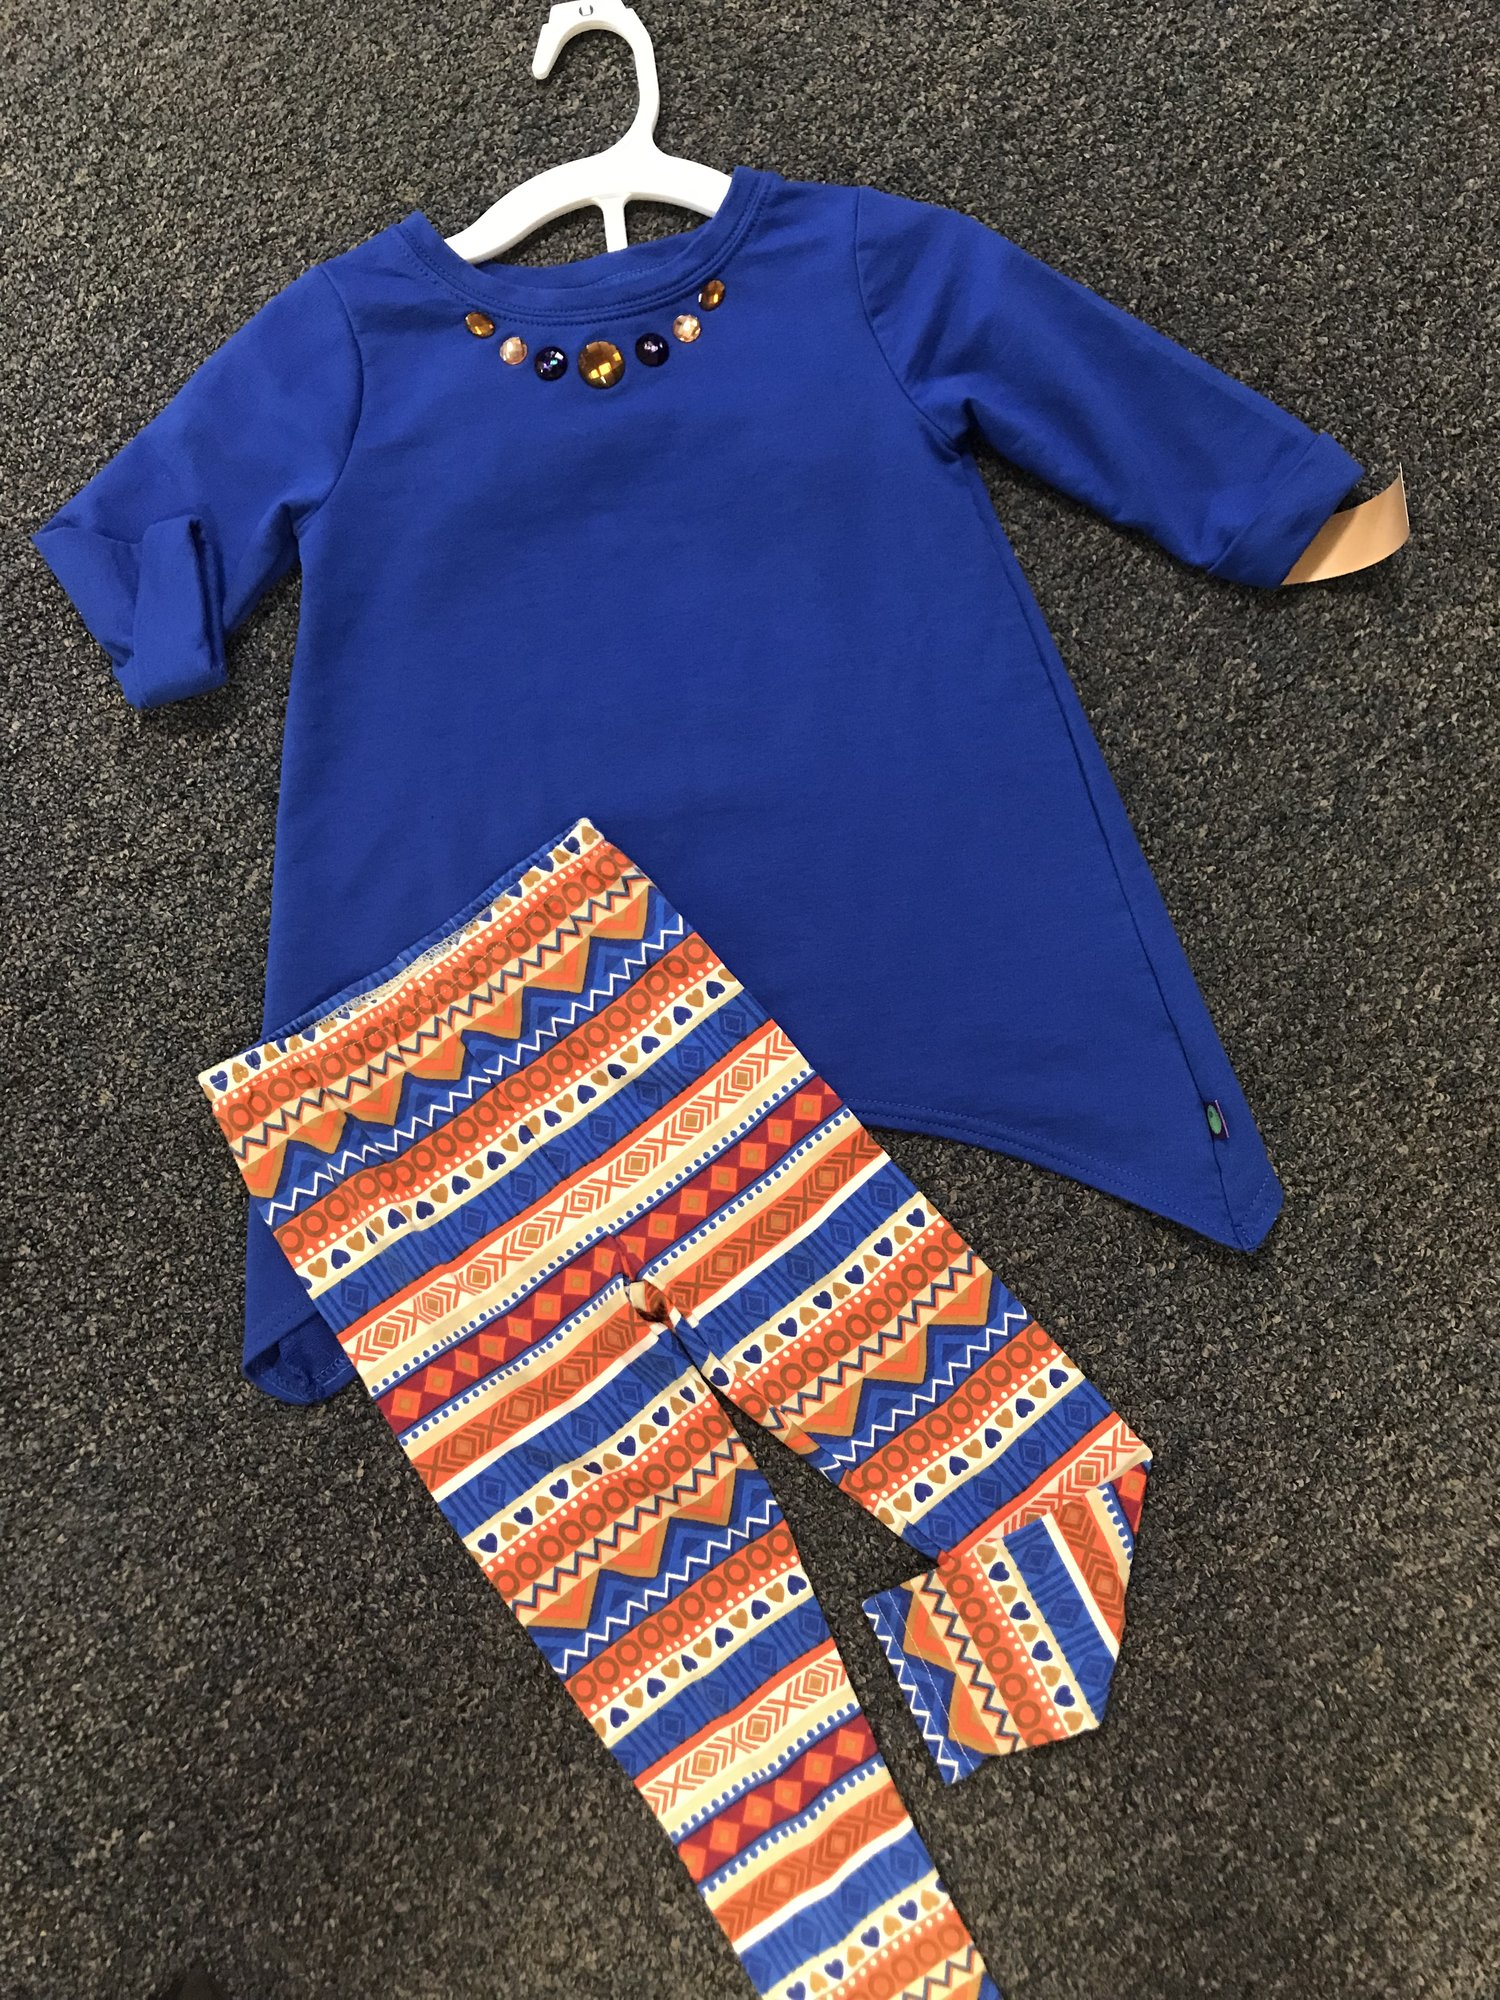 dollie & me brand 2pc long sleeved outfit. Elastic wais pants, excellent condition